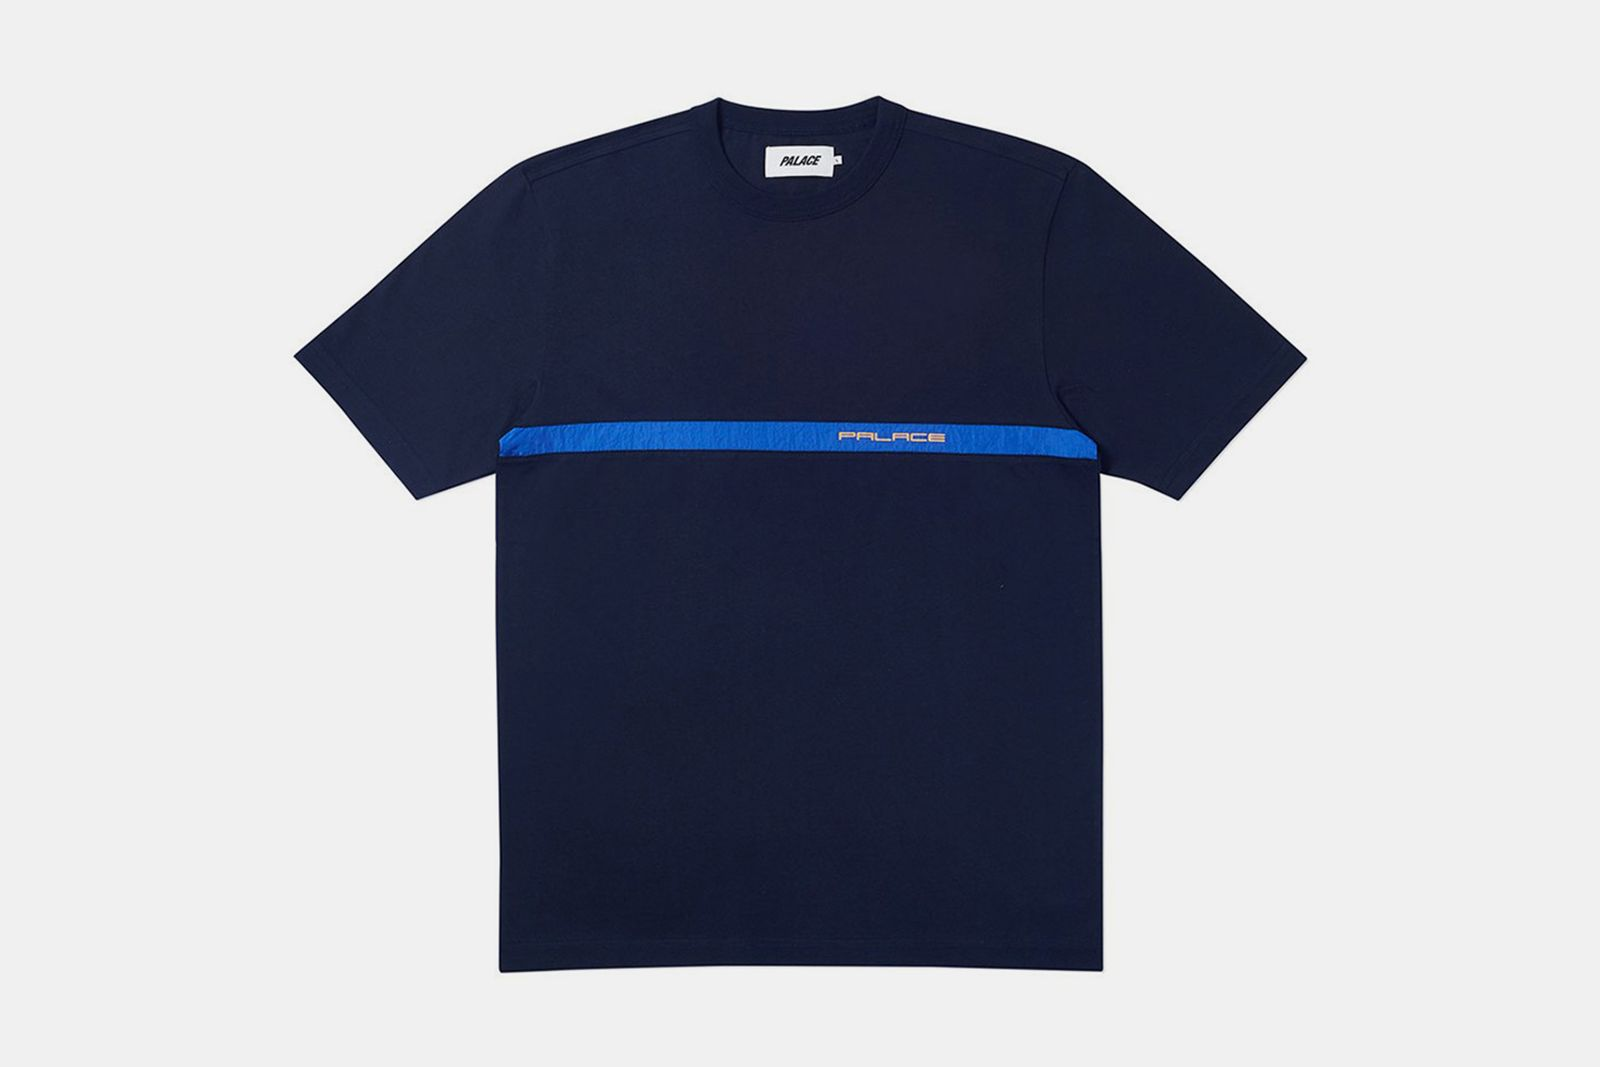 palace summer 2019 collection Palace Skateboards